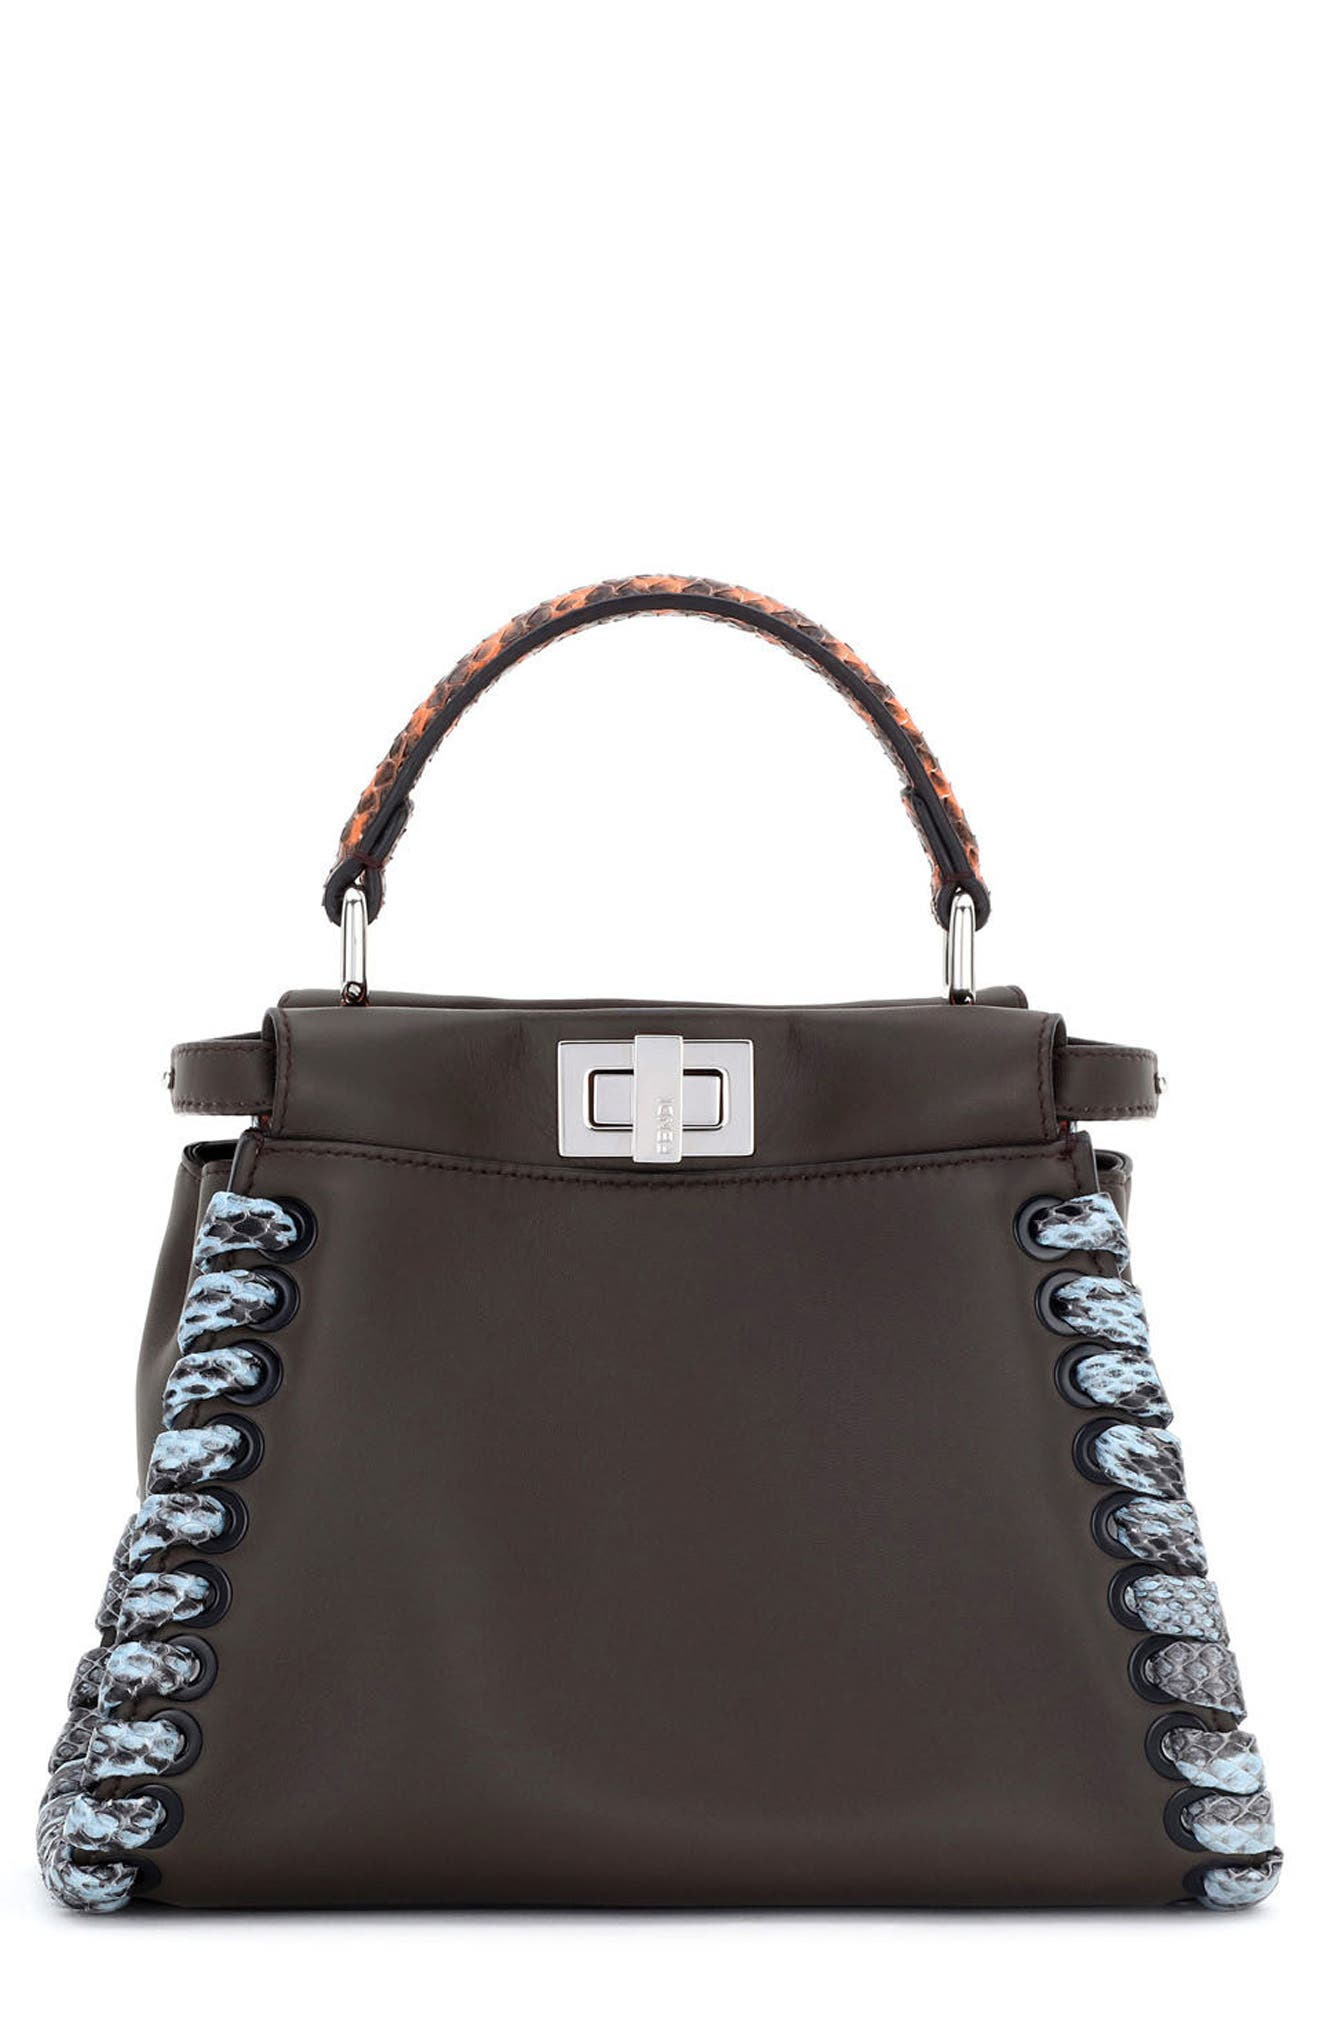 FENDI Mini Peekaboo Leather & Genuine Snakeskin Satchel